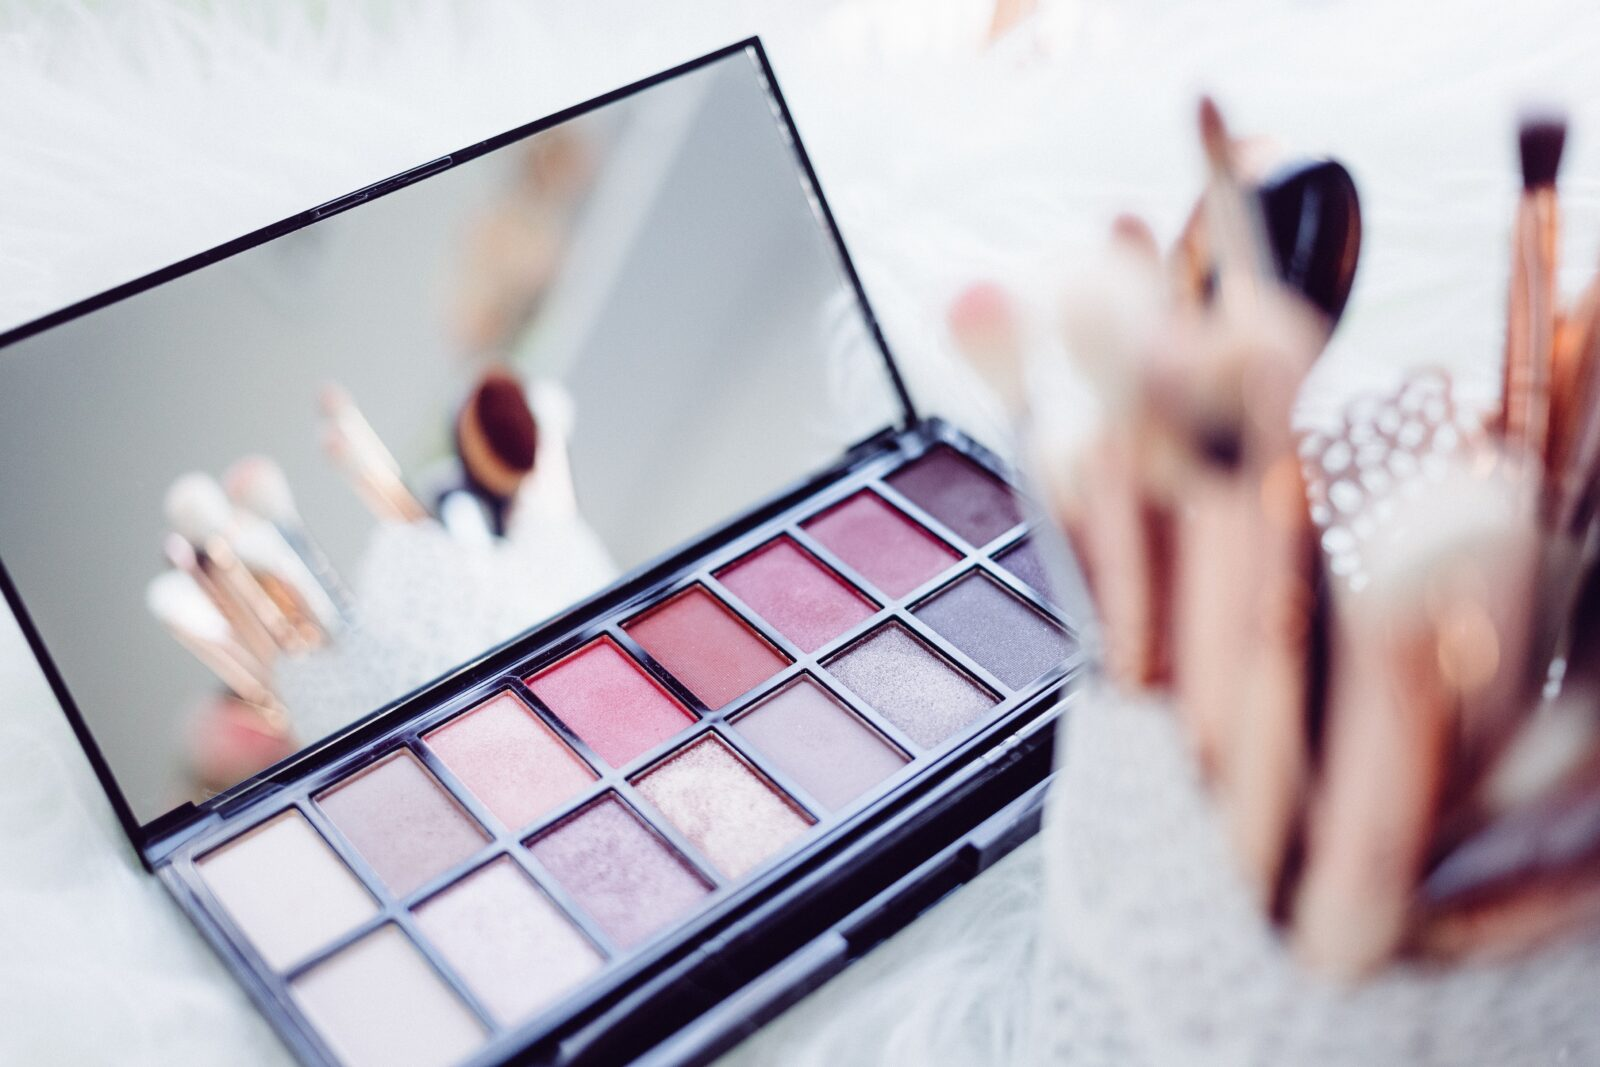 beauty-products-every-woman-should-have-eyeshadow-latest-beauty-trends-entertainments-saga